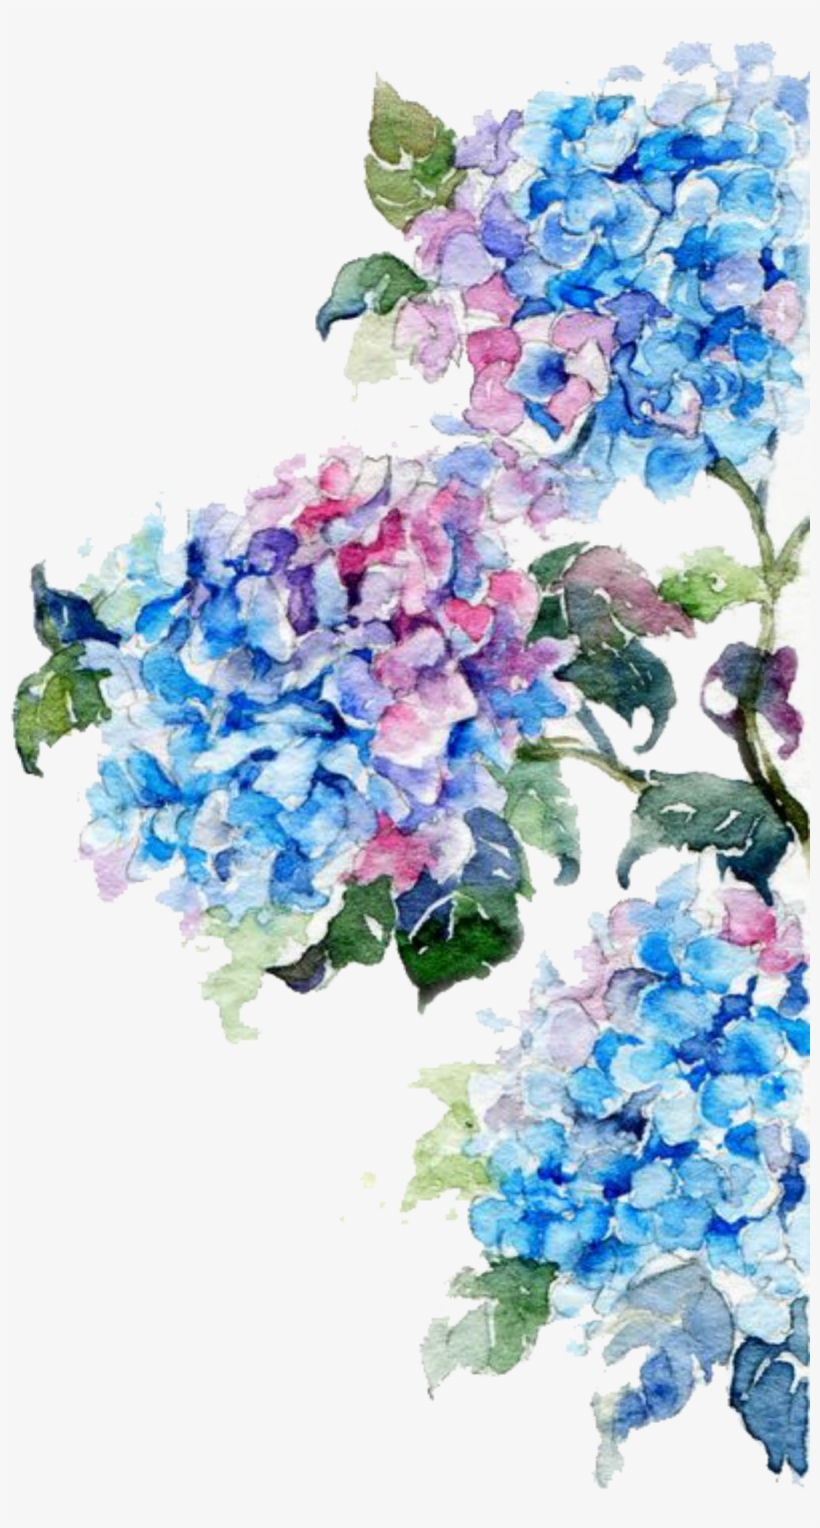 Ftestickers Flowers Border Edging Springcolors - Watercolor Flowers Blue Png, transparent png #1085948